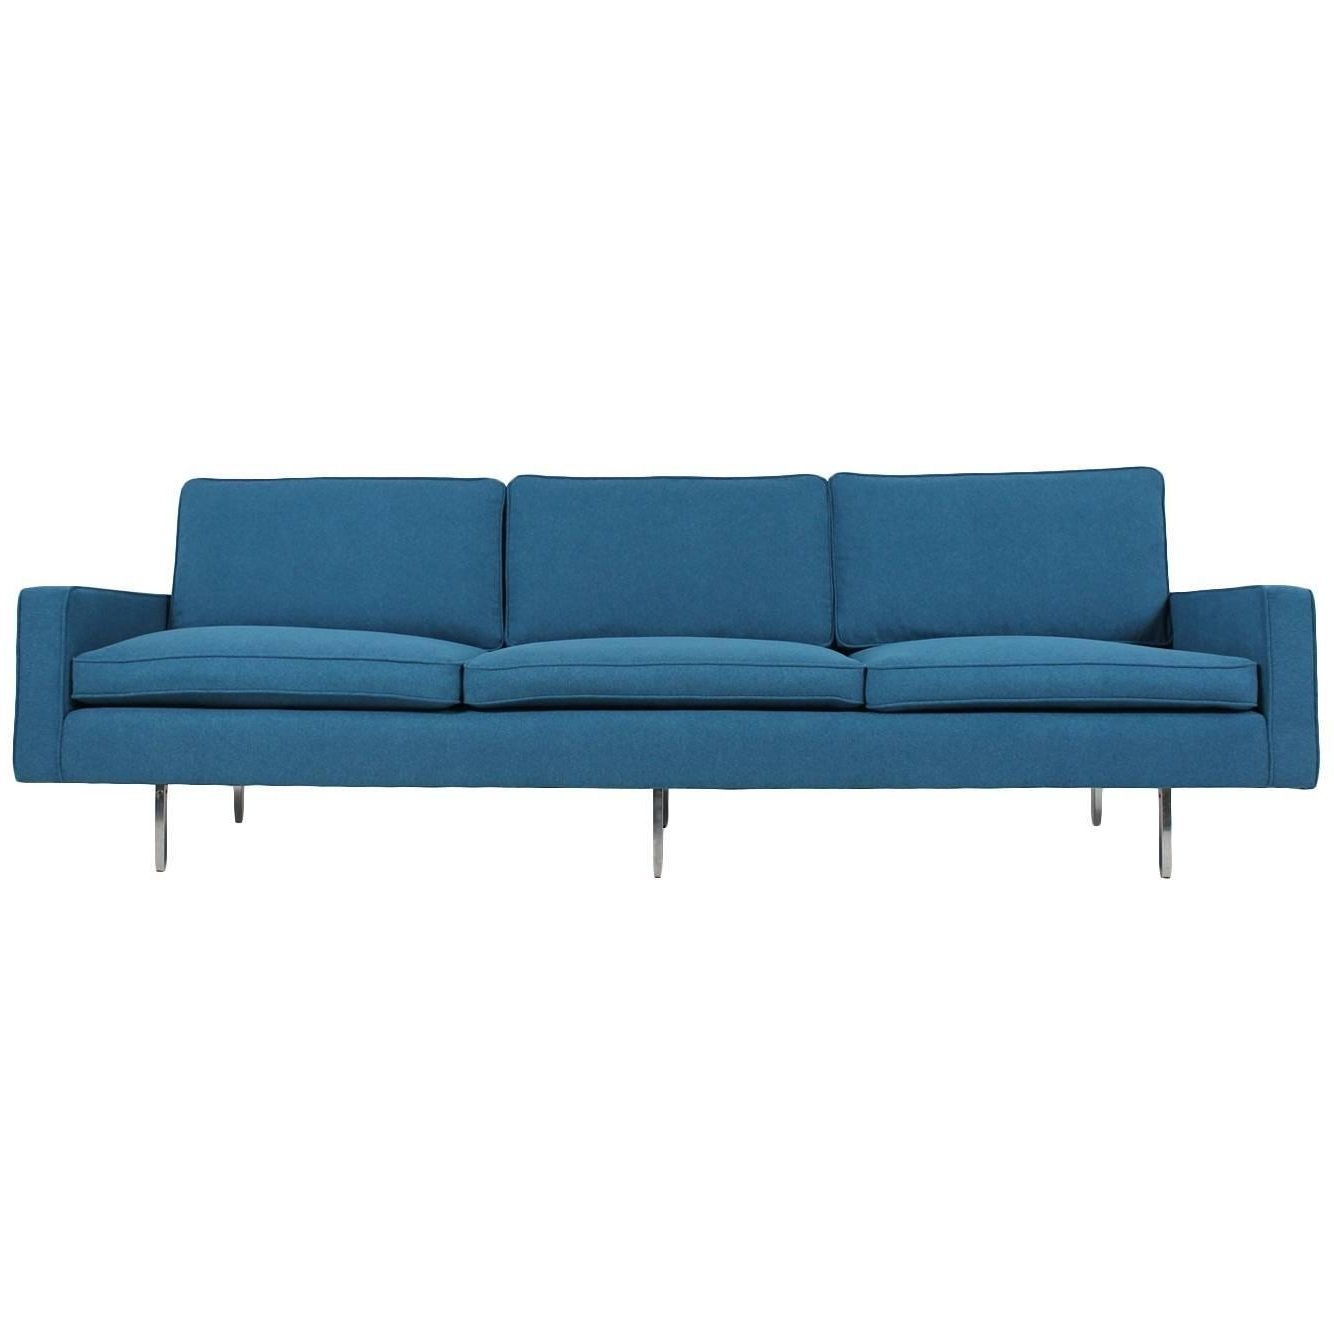 Most Popular Florence Sofas And Loveseats With Regard To Florence Knoll Sofas – 61 For Sale At 1Stdibs (View 15 of 15)